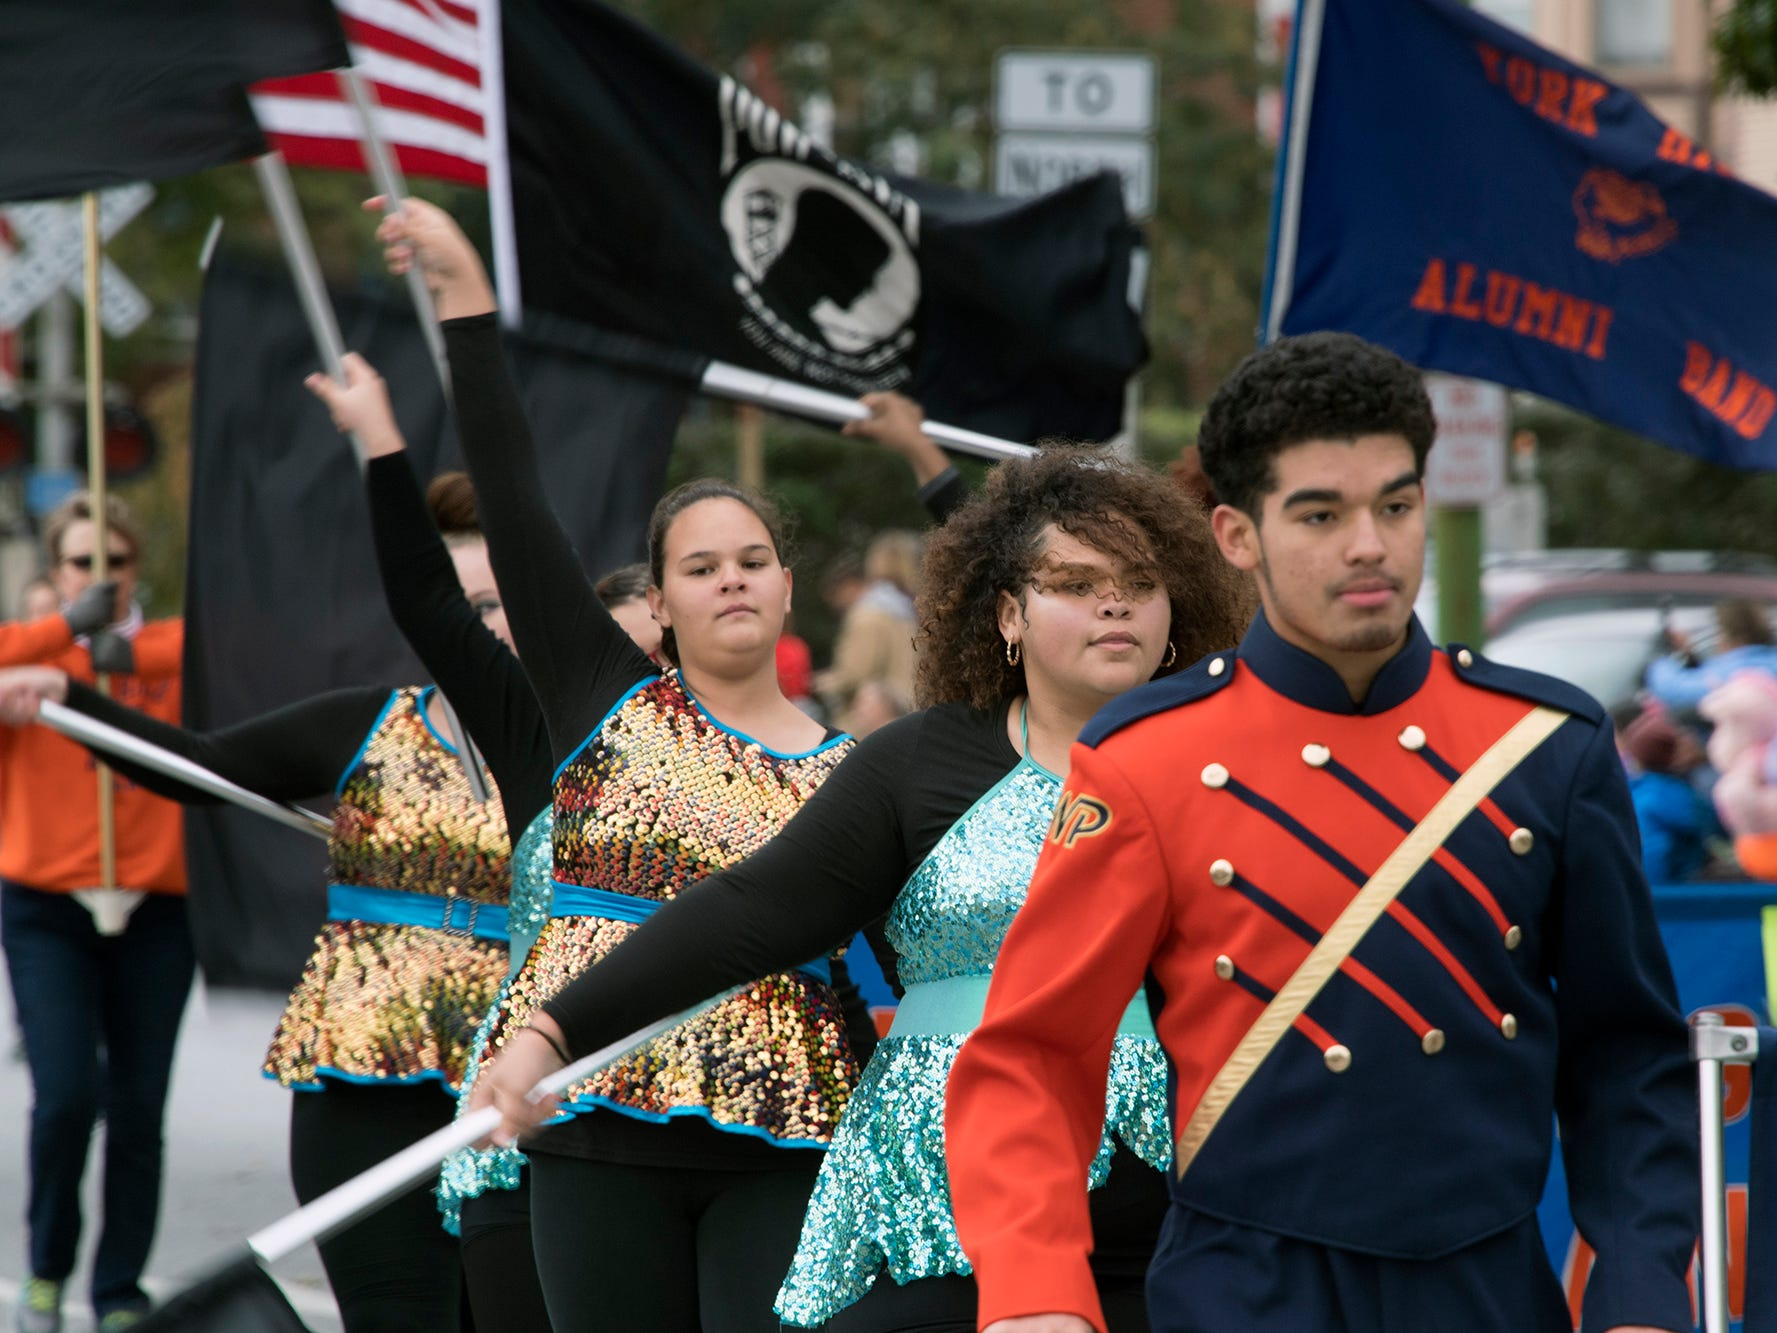 William Penn High School Bearcat Marching Band walks during the 69th Annual York Halloween Parade presented by York Traditions Bank Sunday in York.